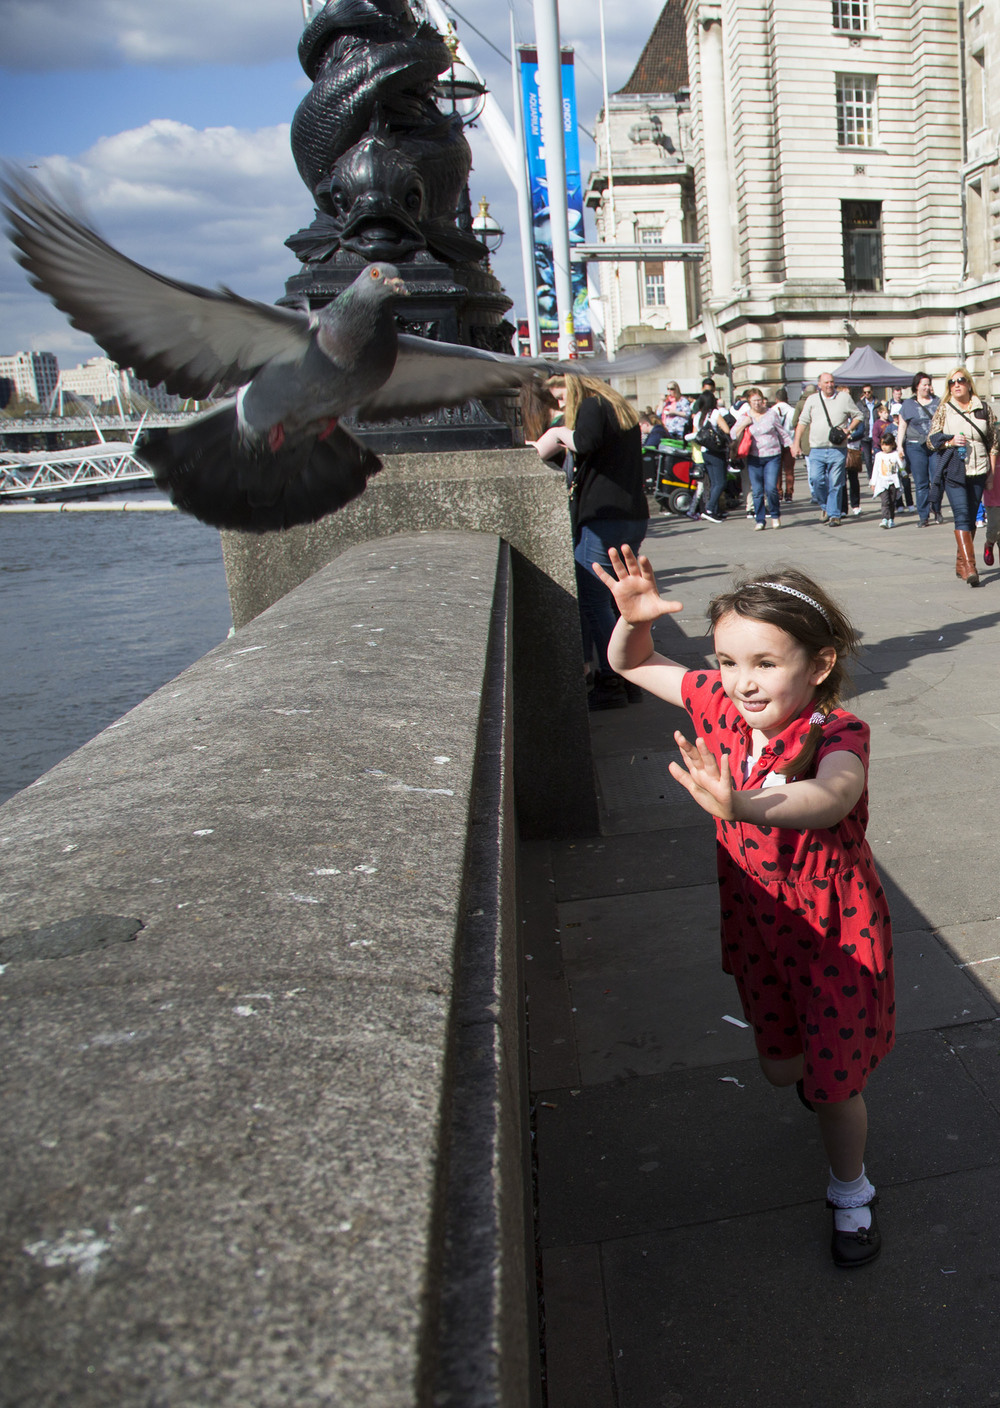 Little girl tries to catch a pigeon which is too quick for her.